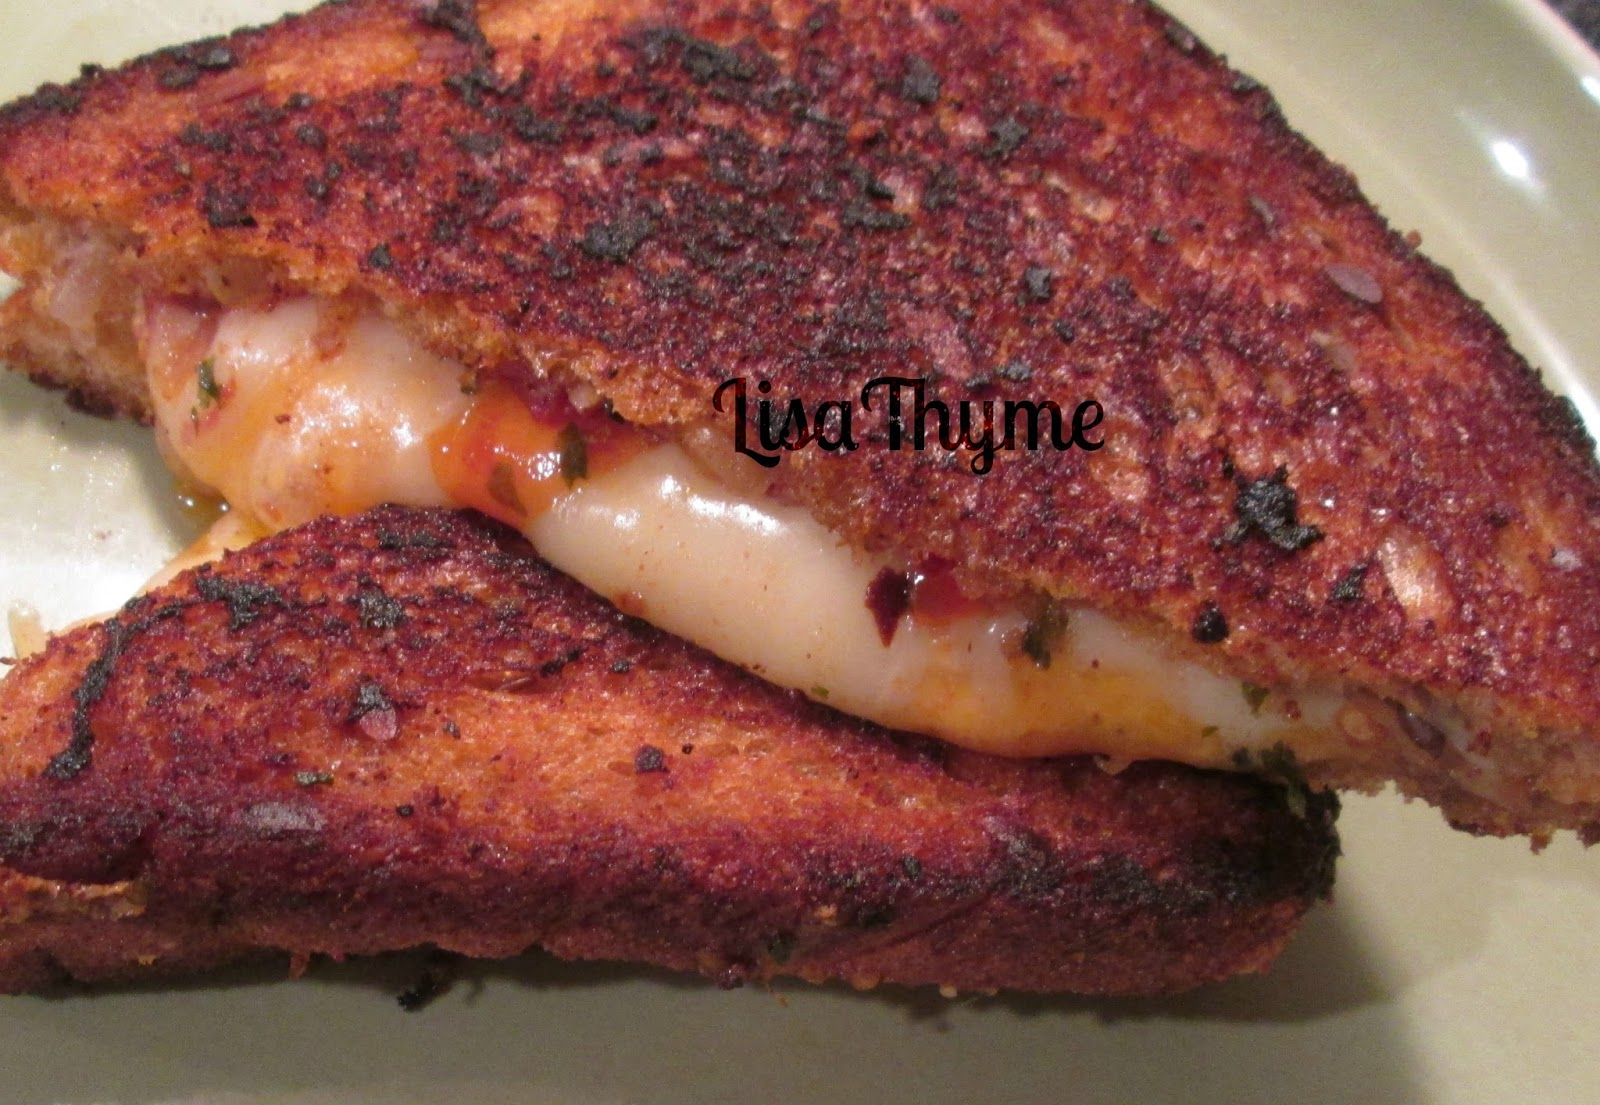 Lisa Thyme: Spicy Hot Tomato Grilled Cheese